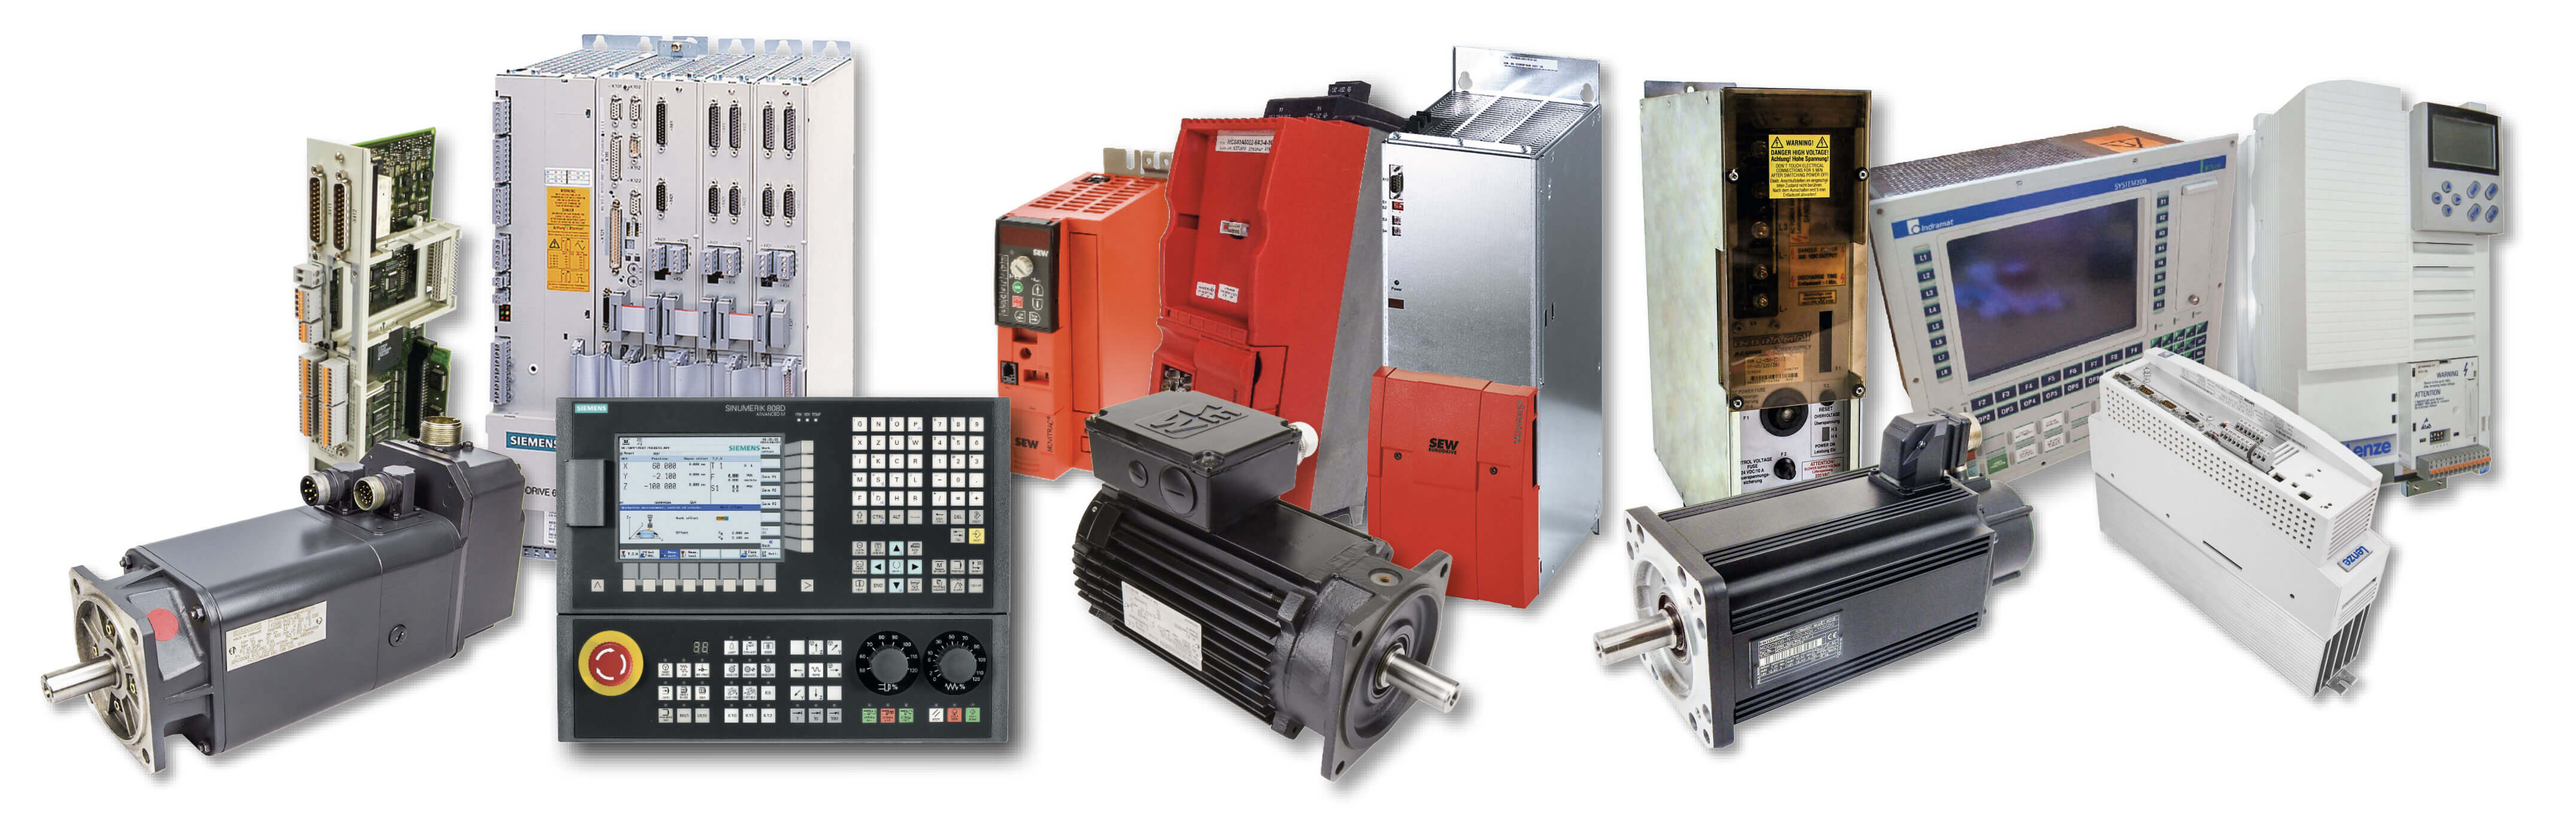 CNC - Unser Portfolio - Collage - BVS Industrie-Elektronik